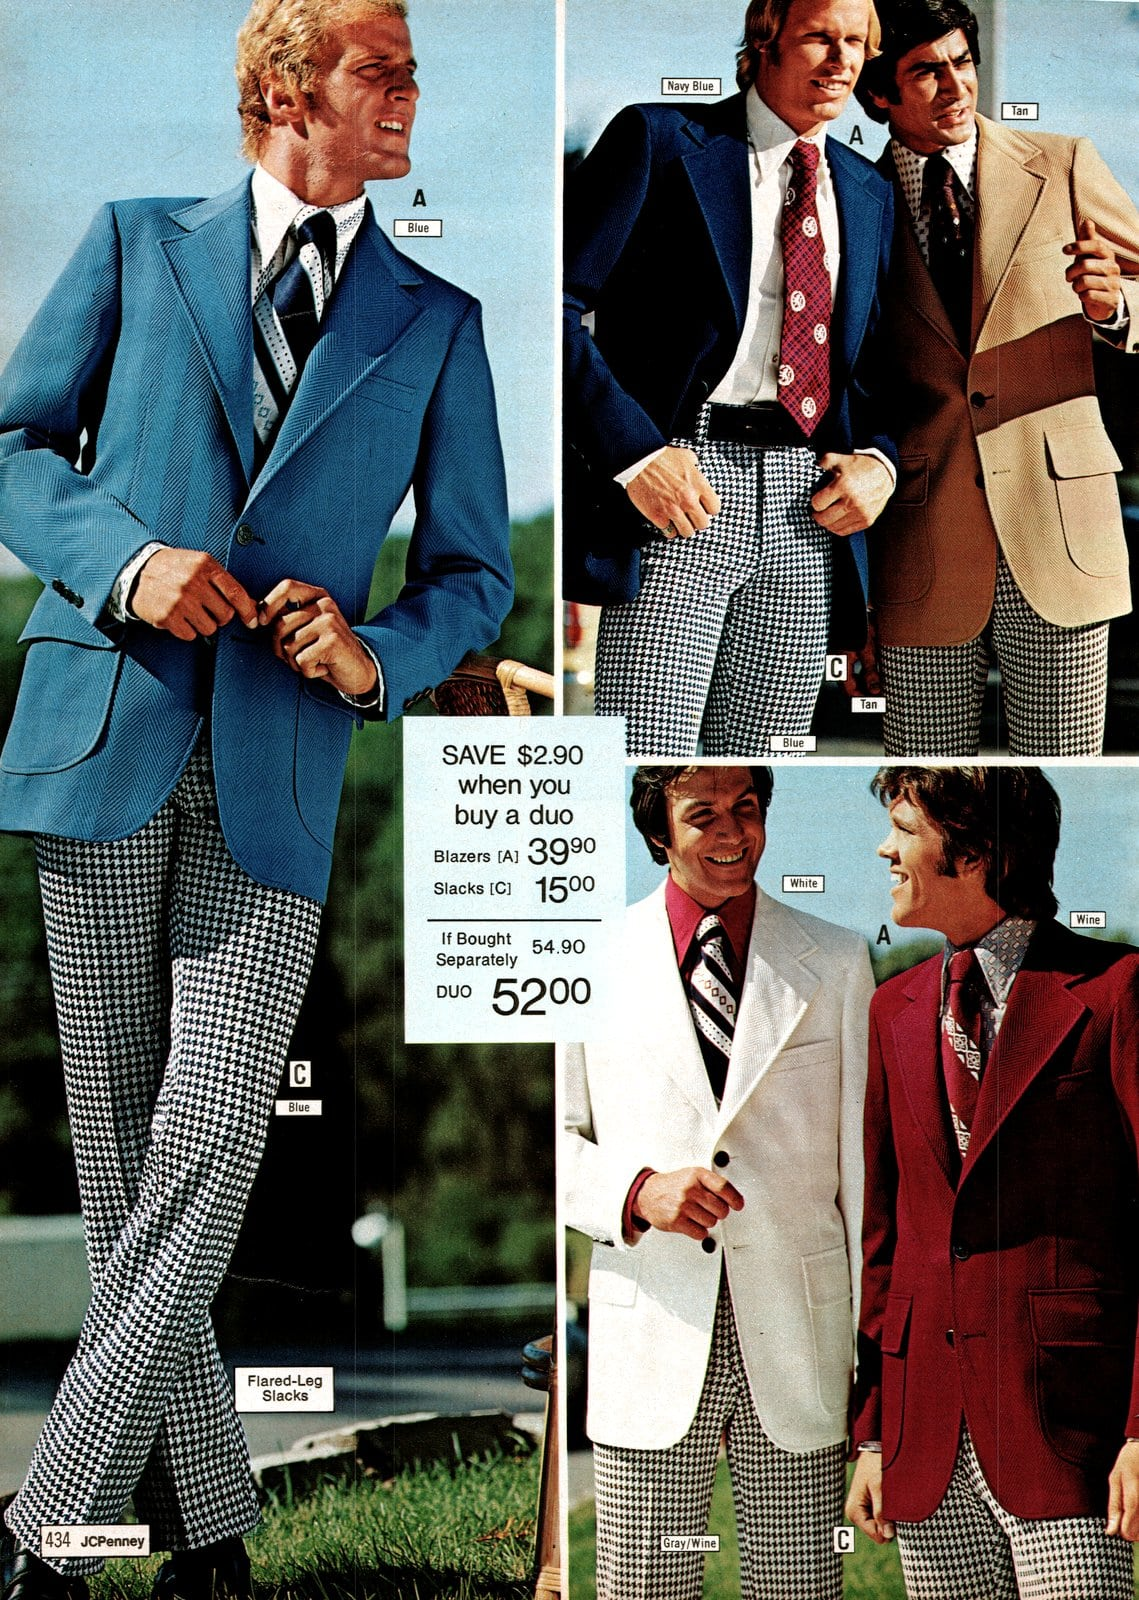 Suits for men from JC Penney in 1973 (2)